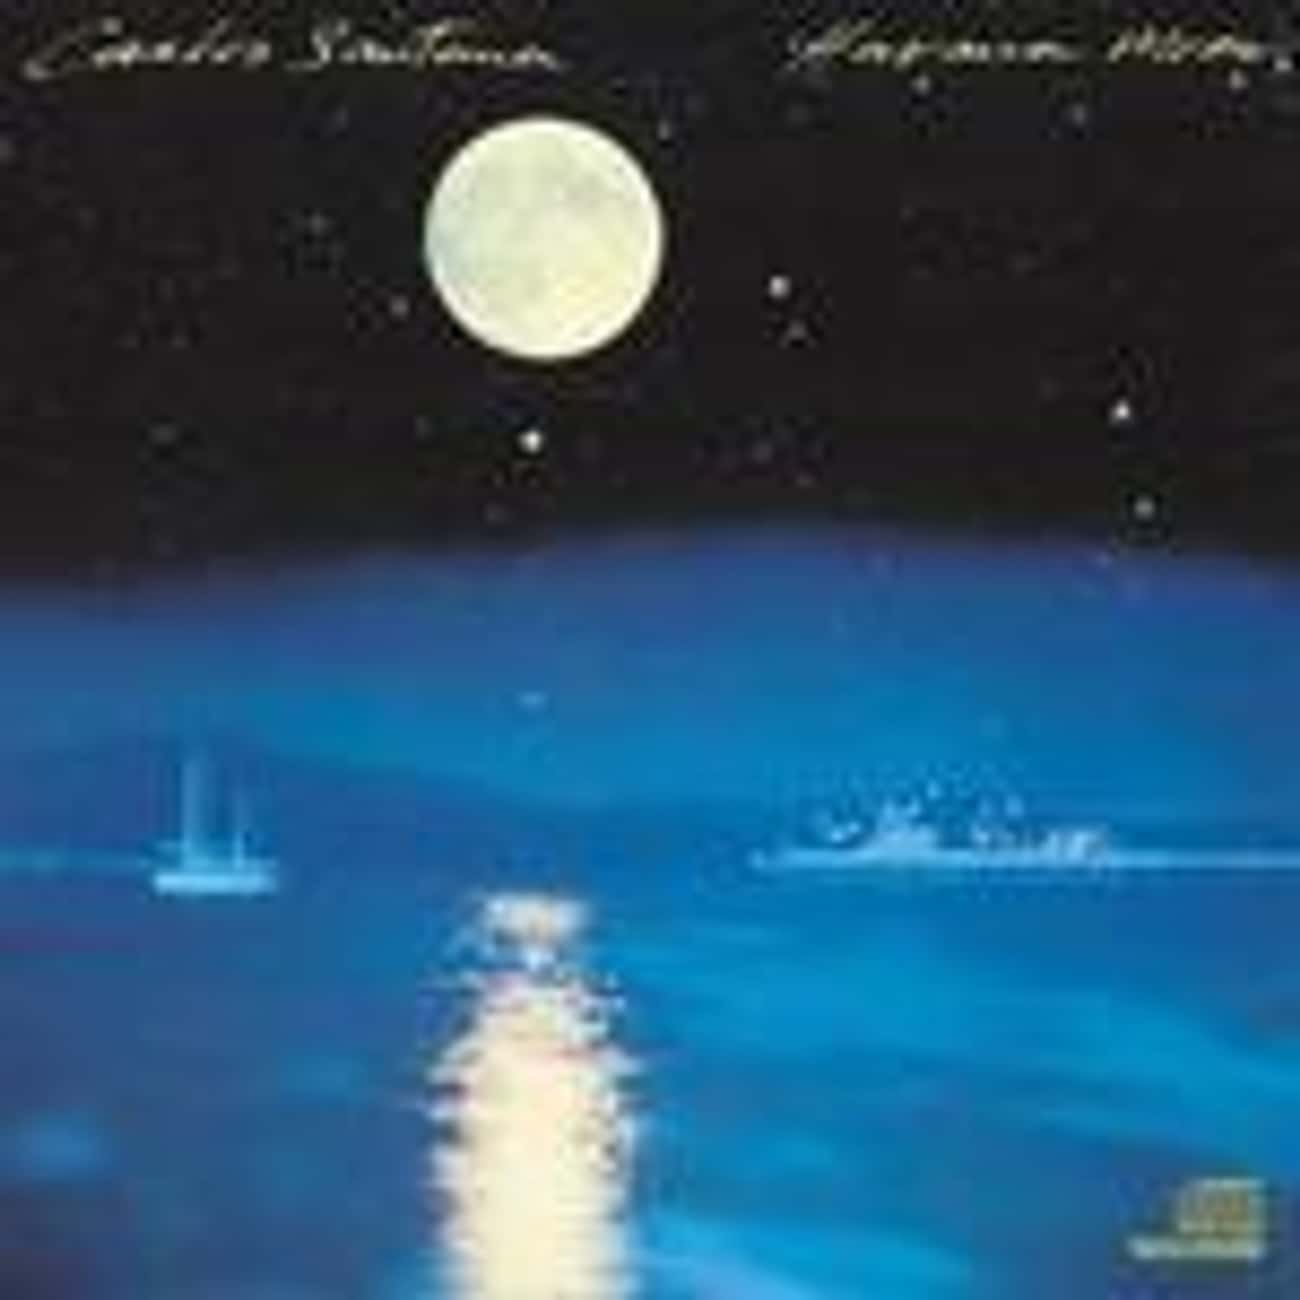 Havana Moon is listed (or ranked) 4 on the list The Best Carlos Santana Albums of All Time